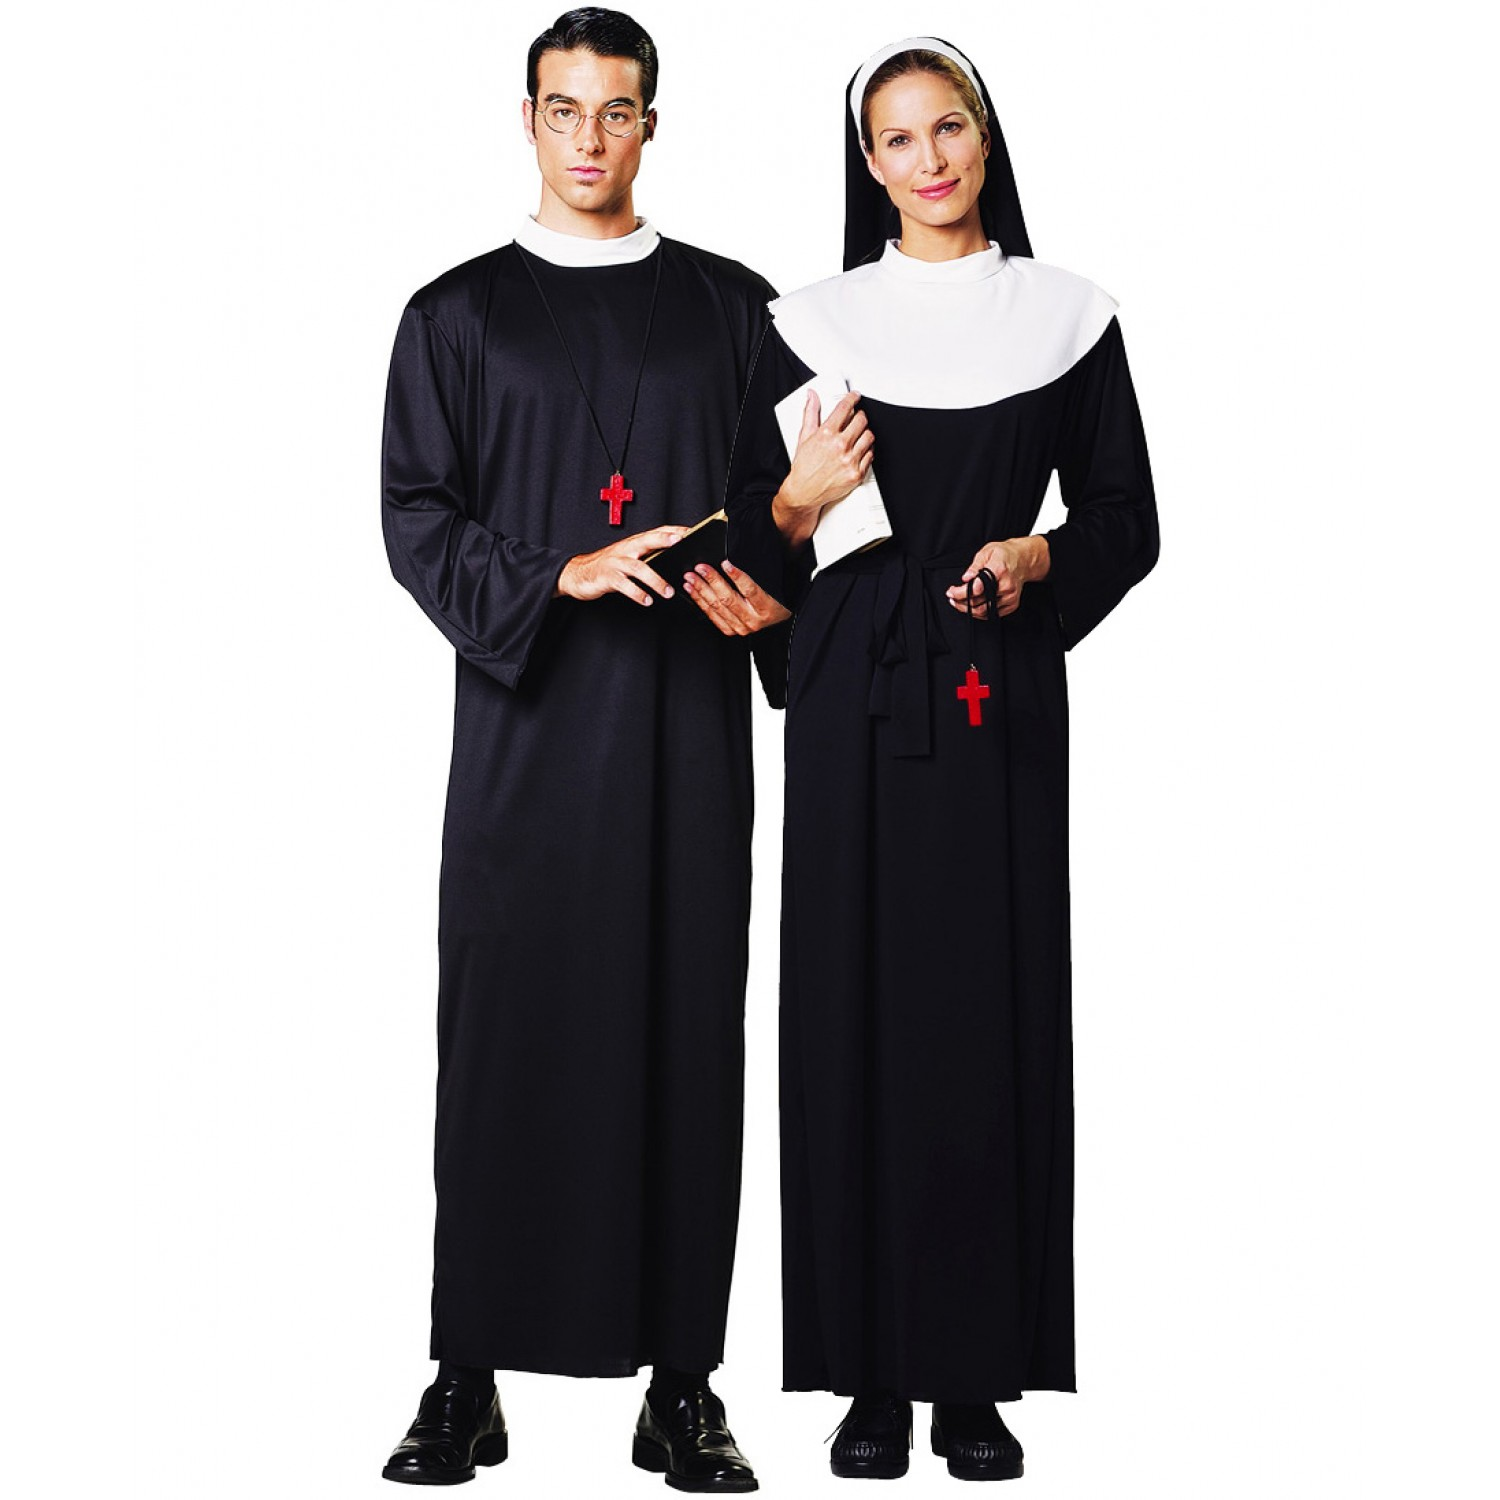 Priest clipart outfit. Costume costumes fc and